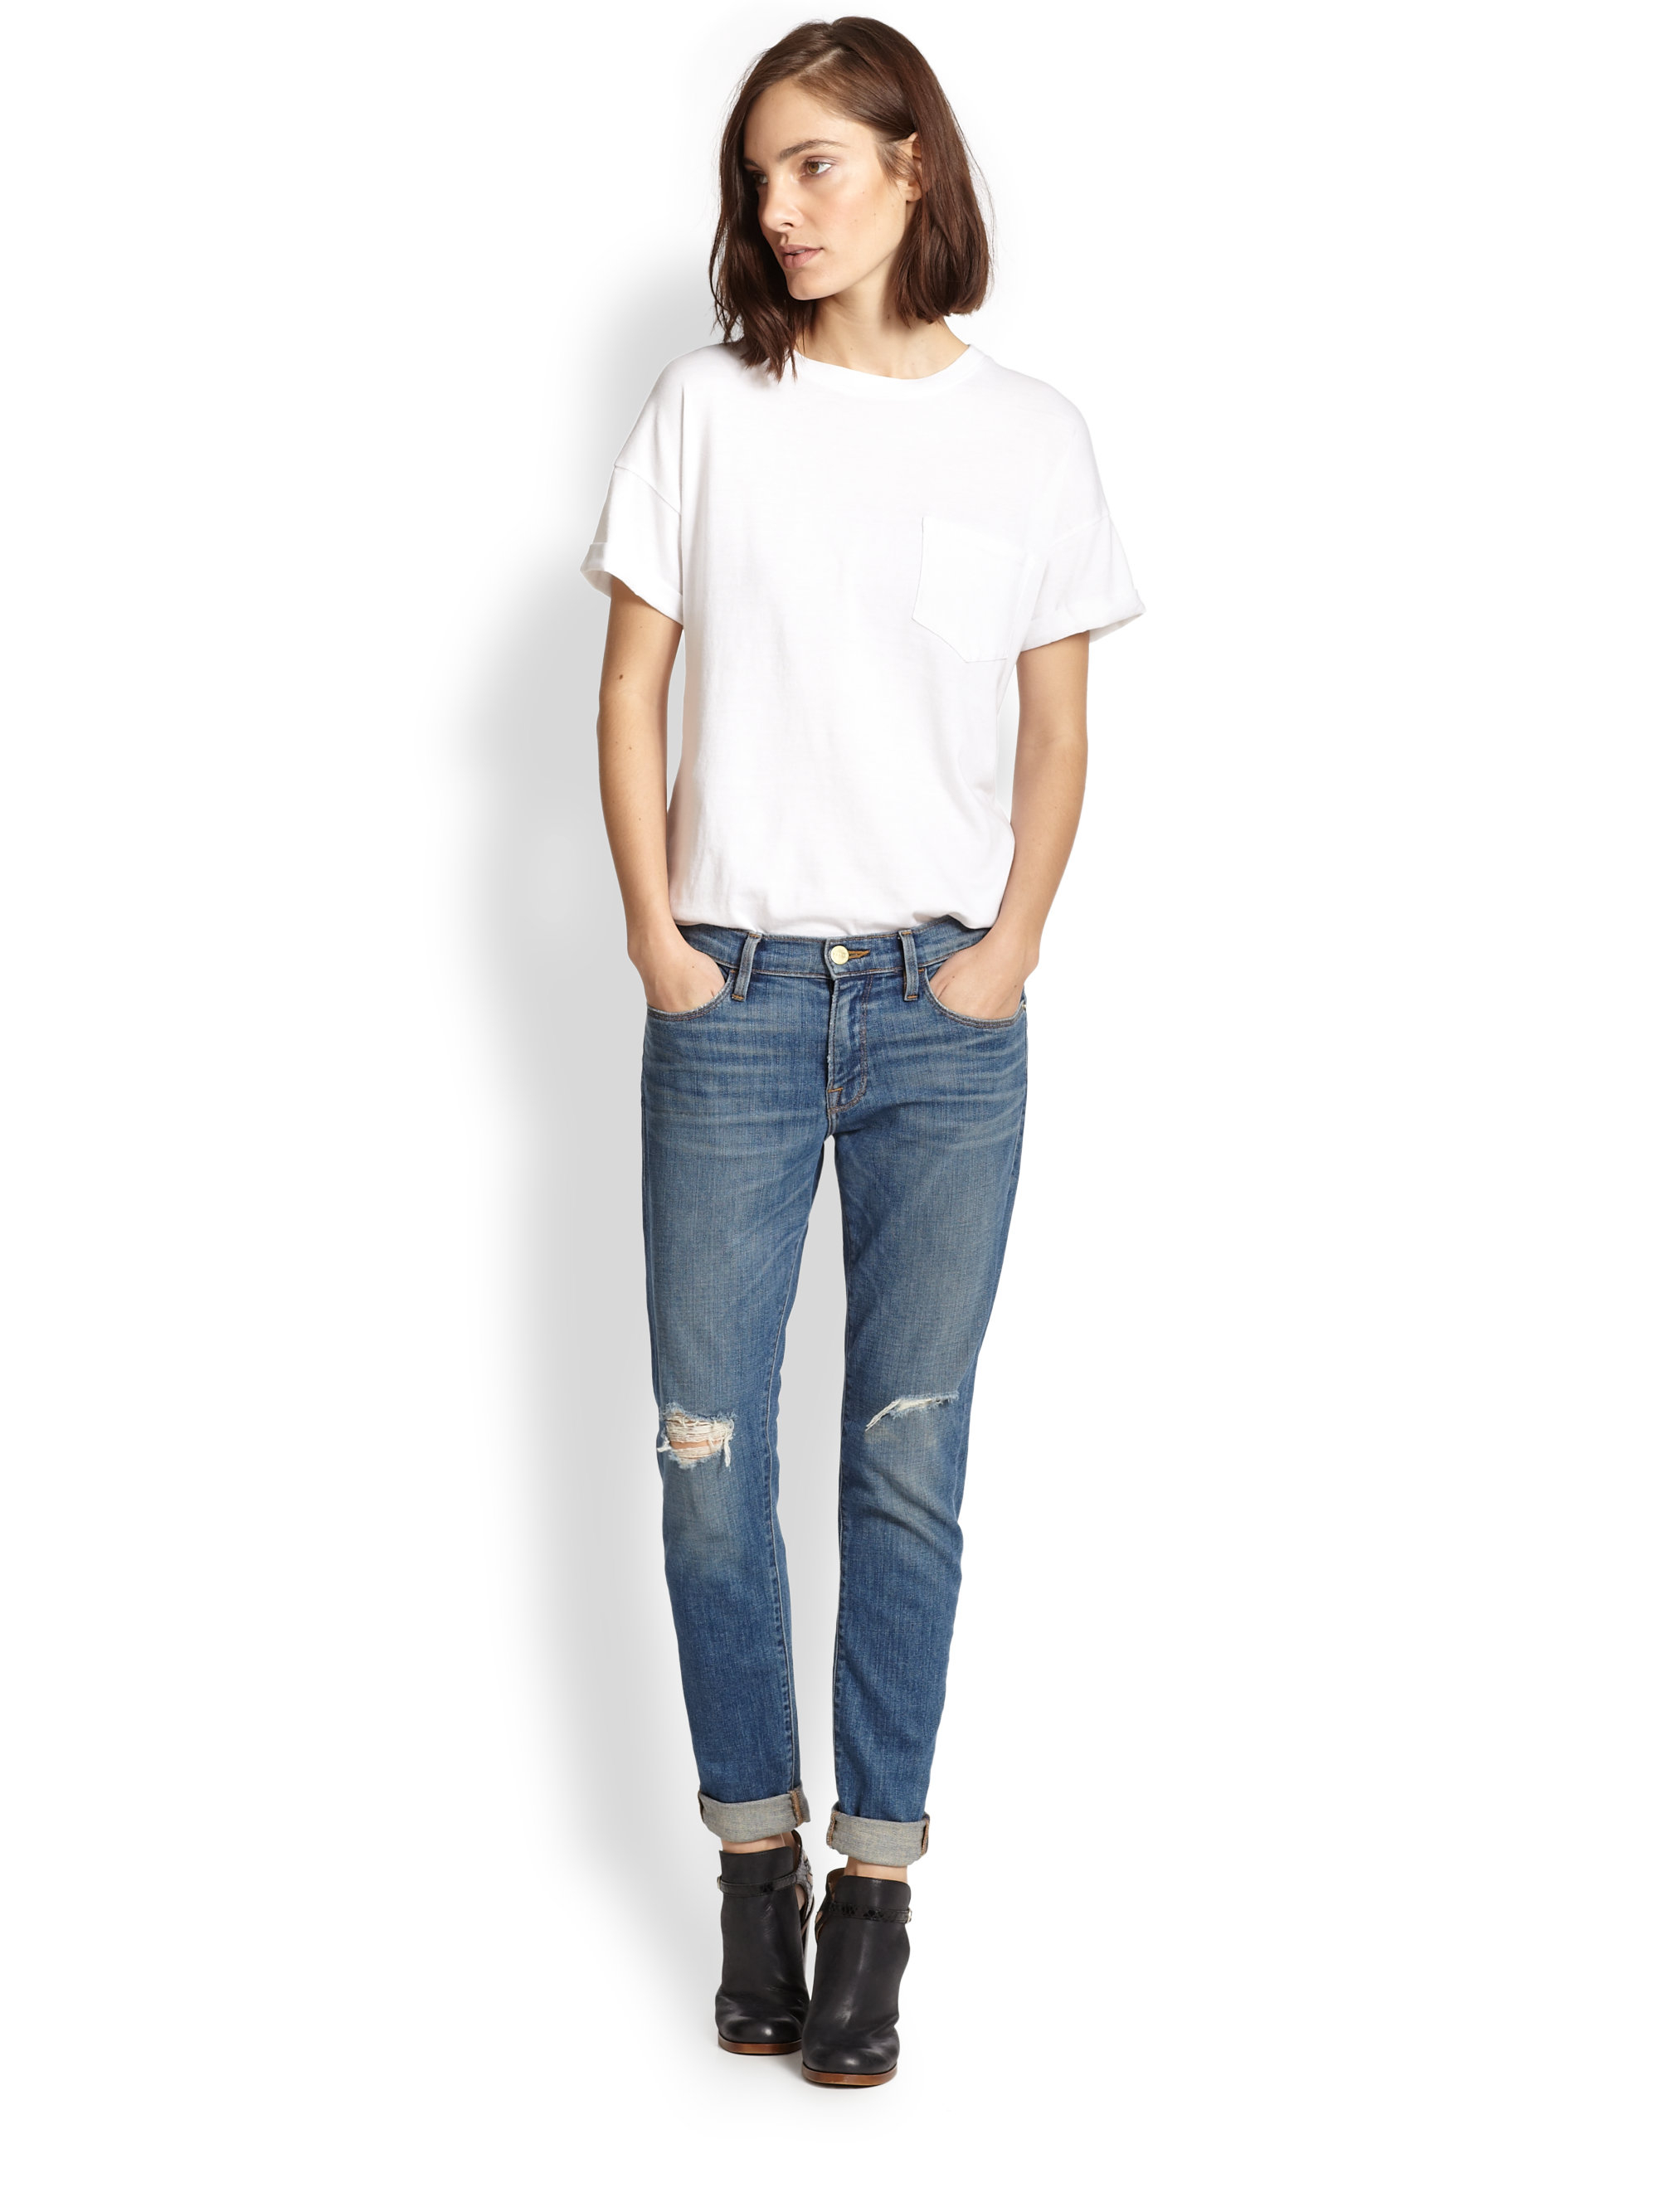 Charming Frame Denim Le Skinny | Sophisticated Frame Denim Le Garcon